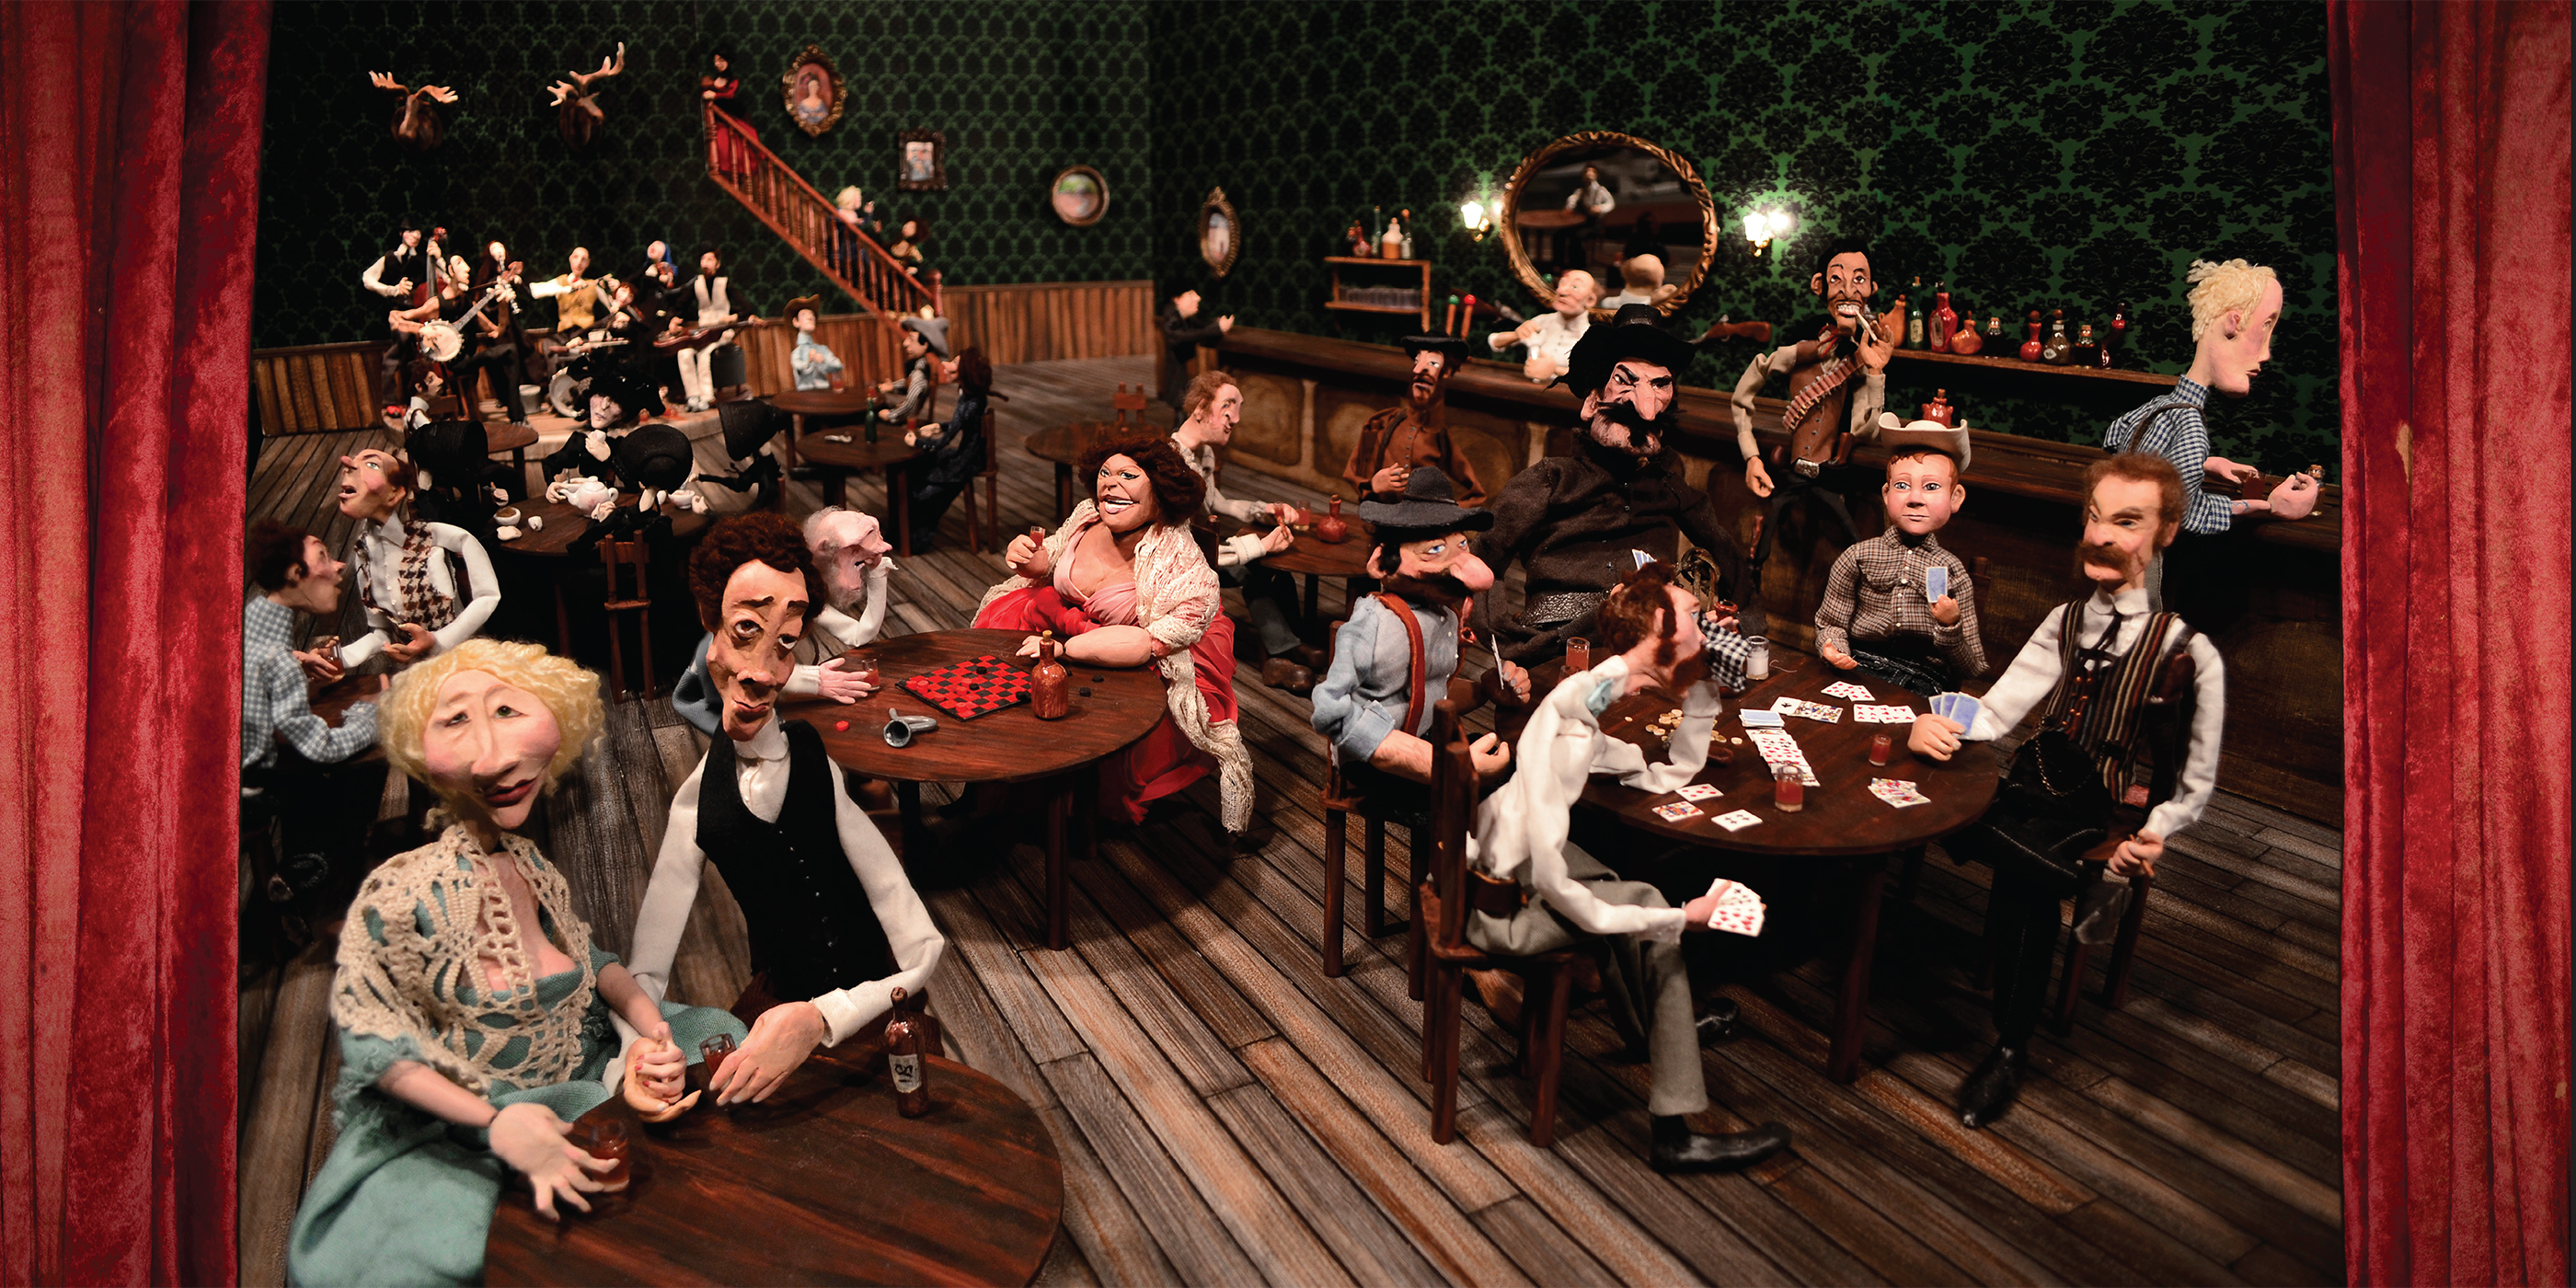 The saloon scene that appears in the gatefold